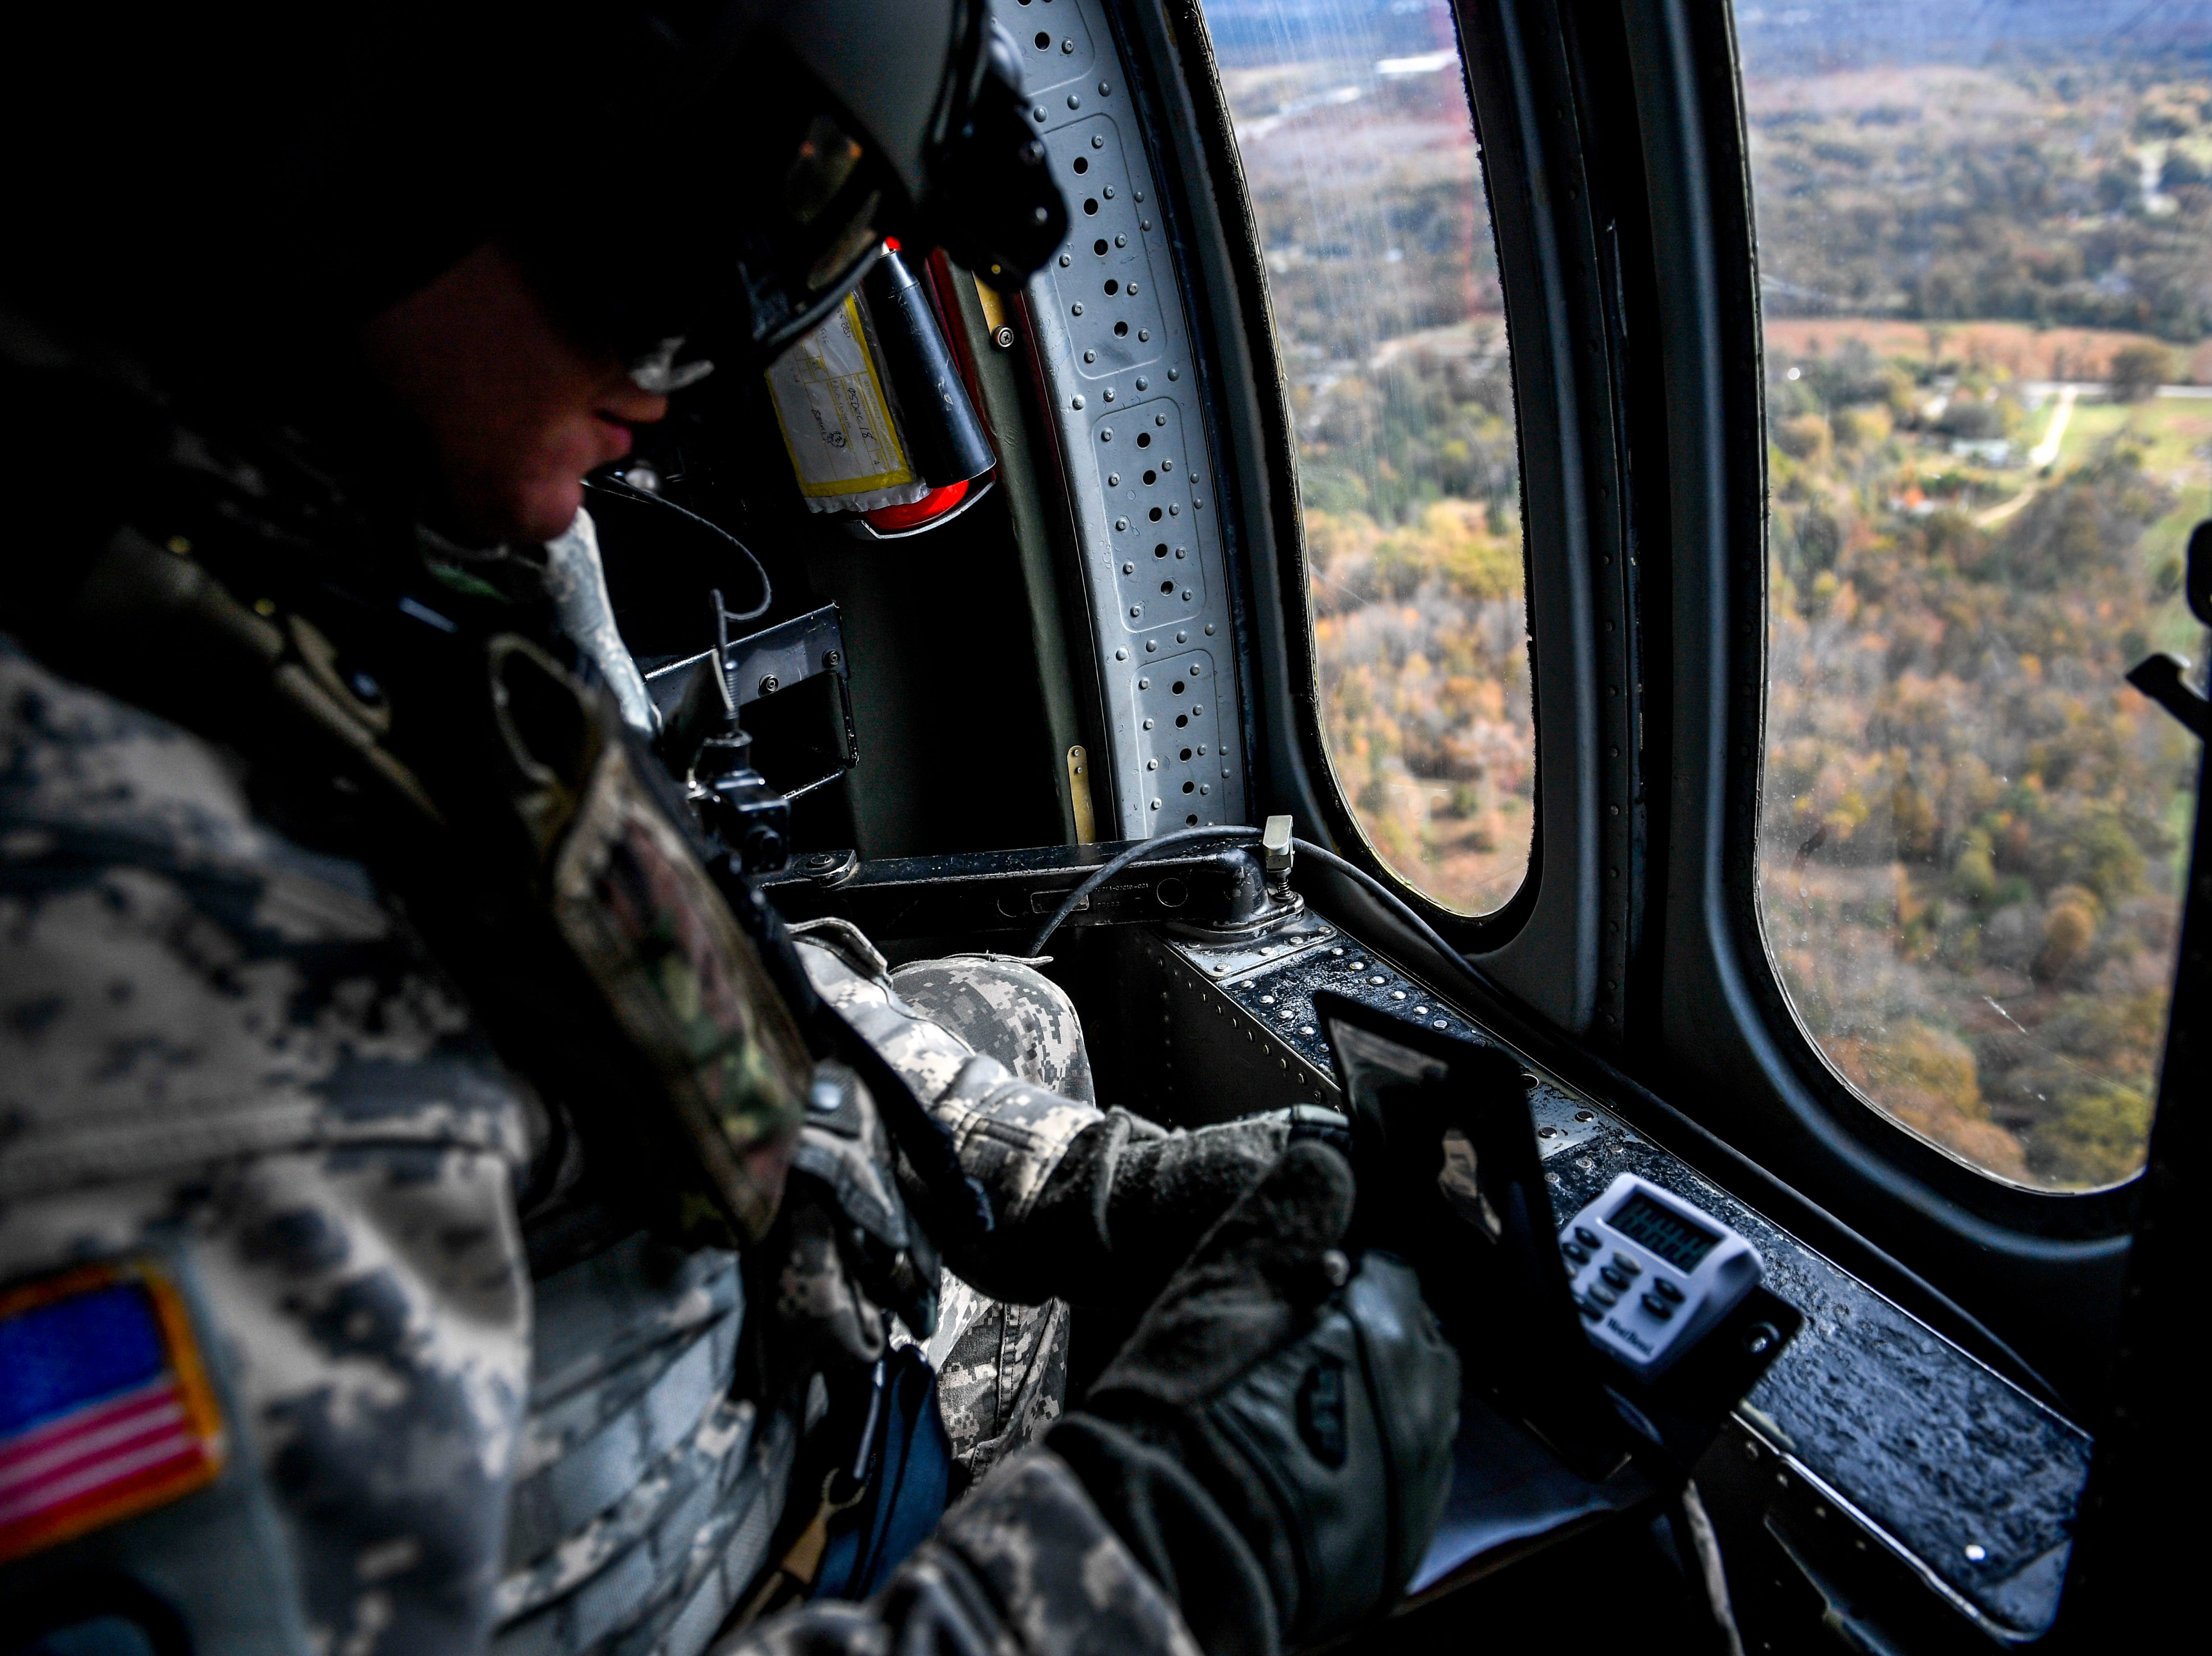 A National Guardsmen keeps records in a small log book during the annual Bosslift event put on by Employer Support of the Guard and Reserve (ESGR) and the Tennessee National Guard at Army Aviation Facility in Jackson, Tenn., on Thursday, Nov. 8, 2018.